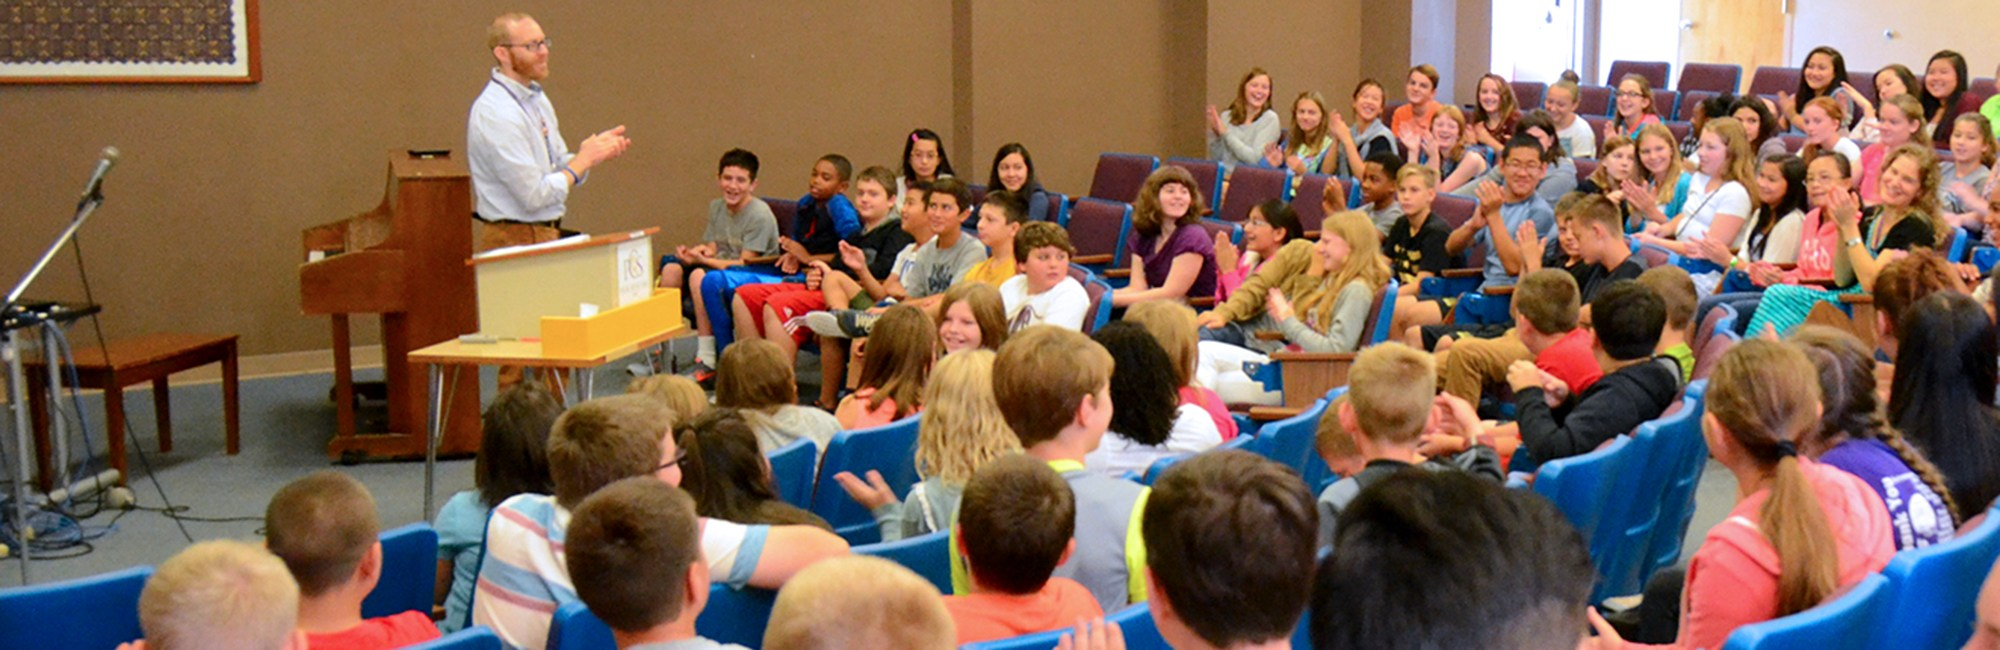 Junior high chapel in the lecture hall